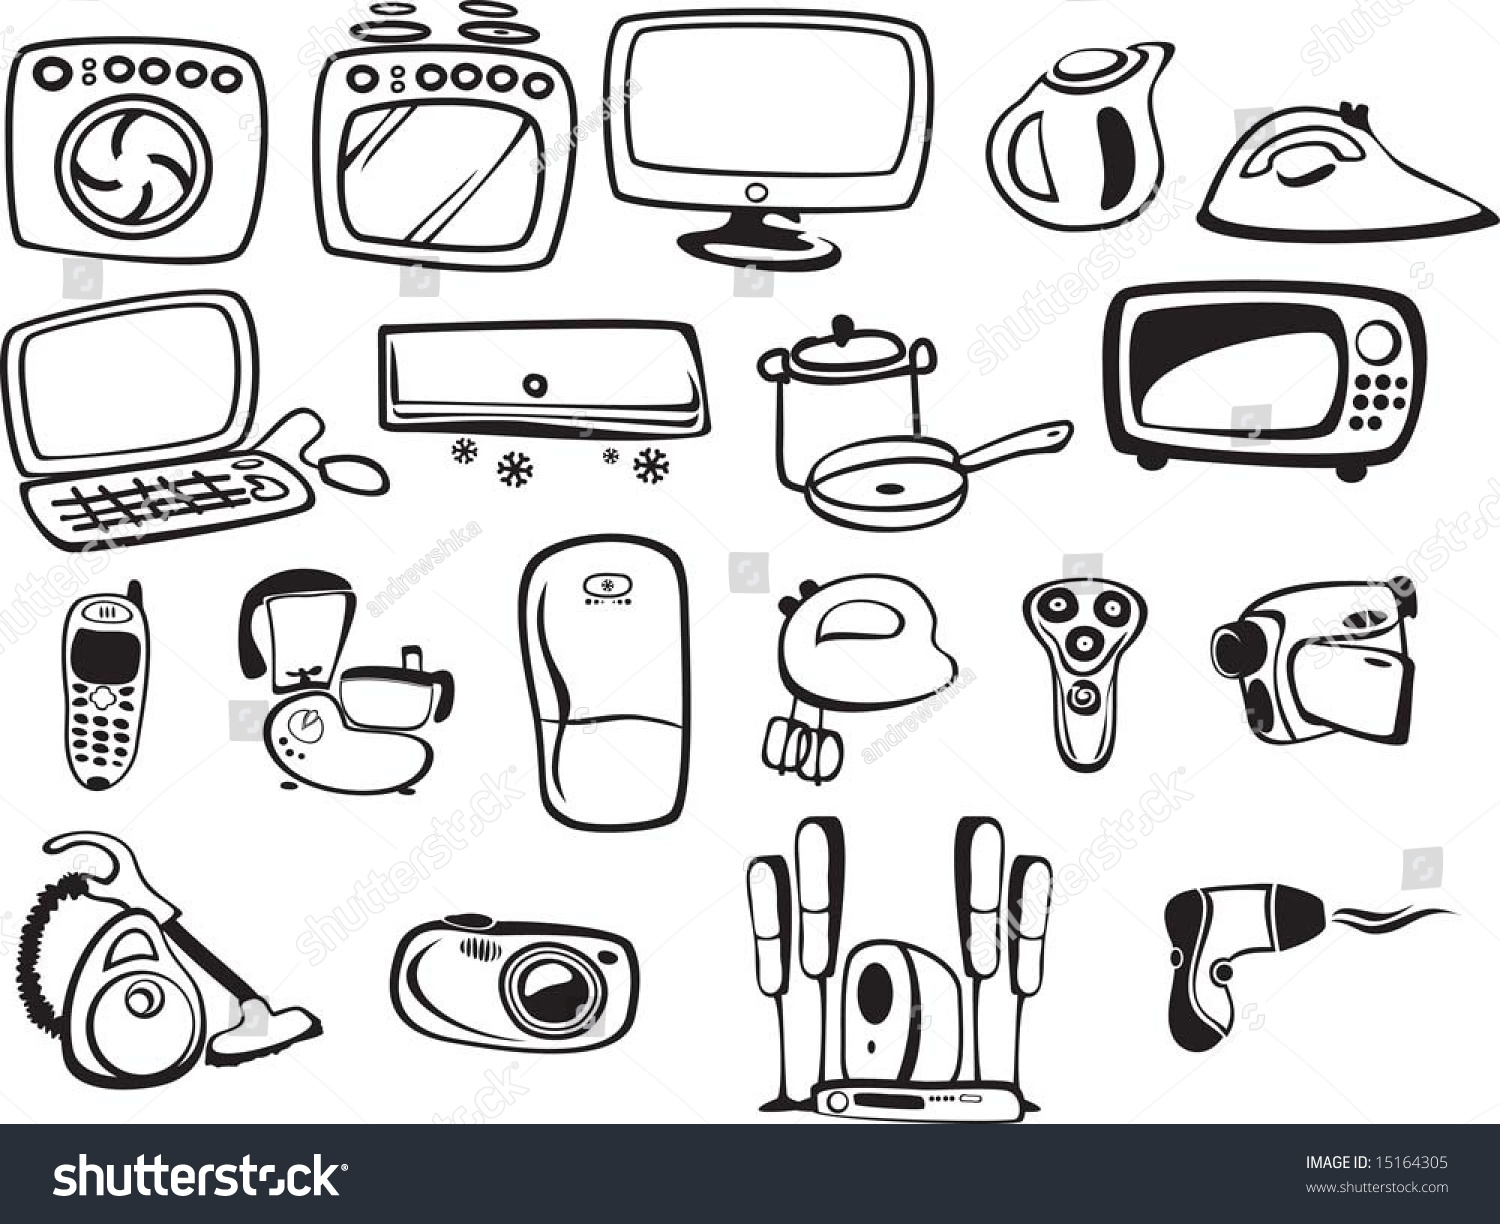 Symbols Household Appliances Electronics Stock Vector HD (Royalty ...